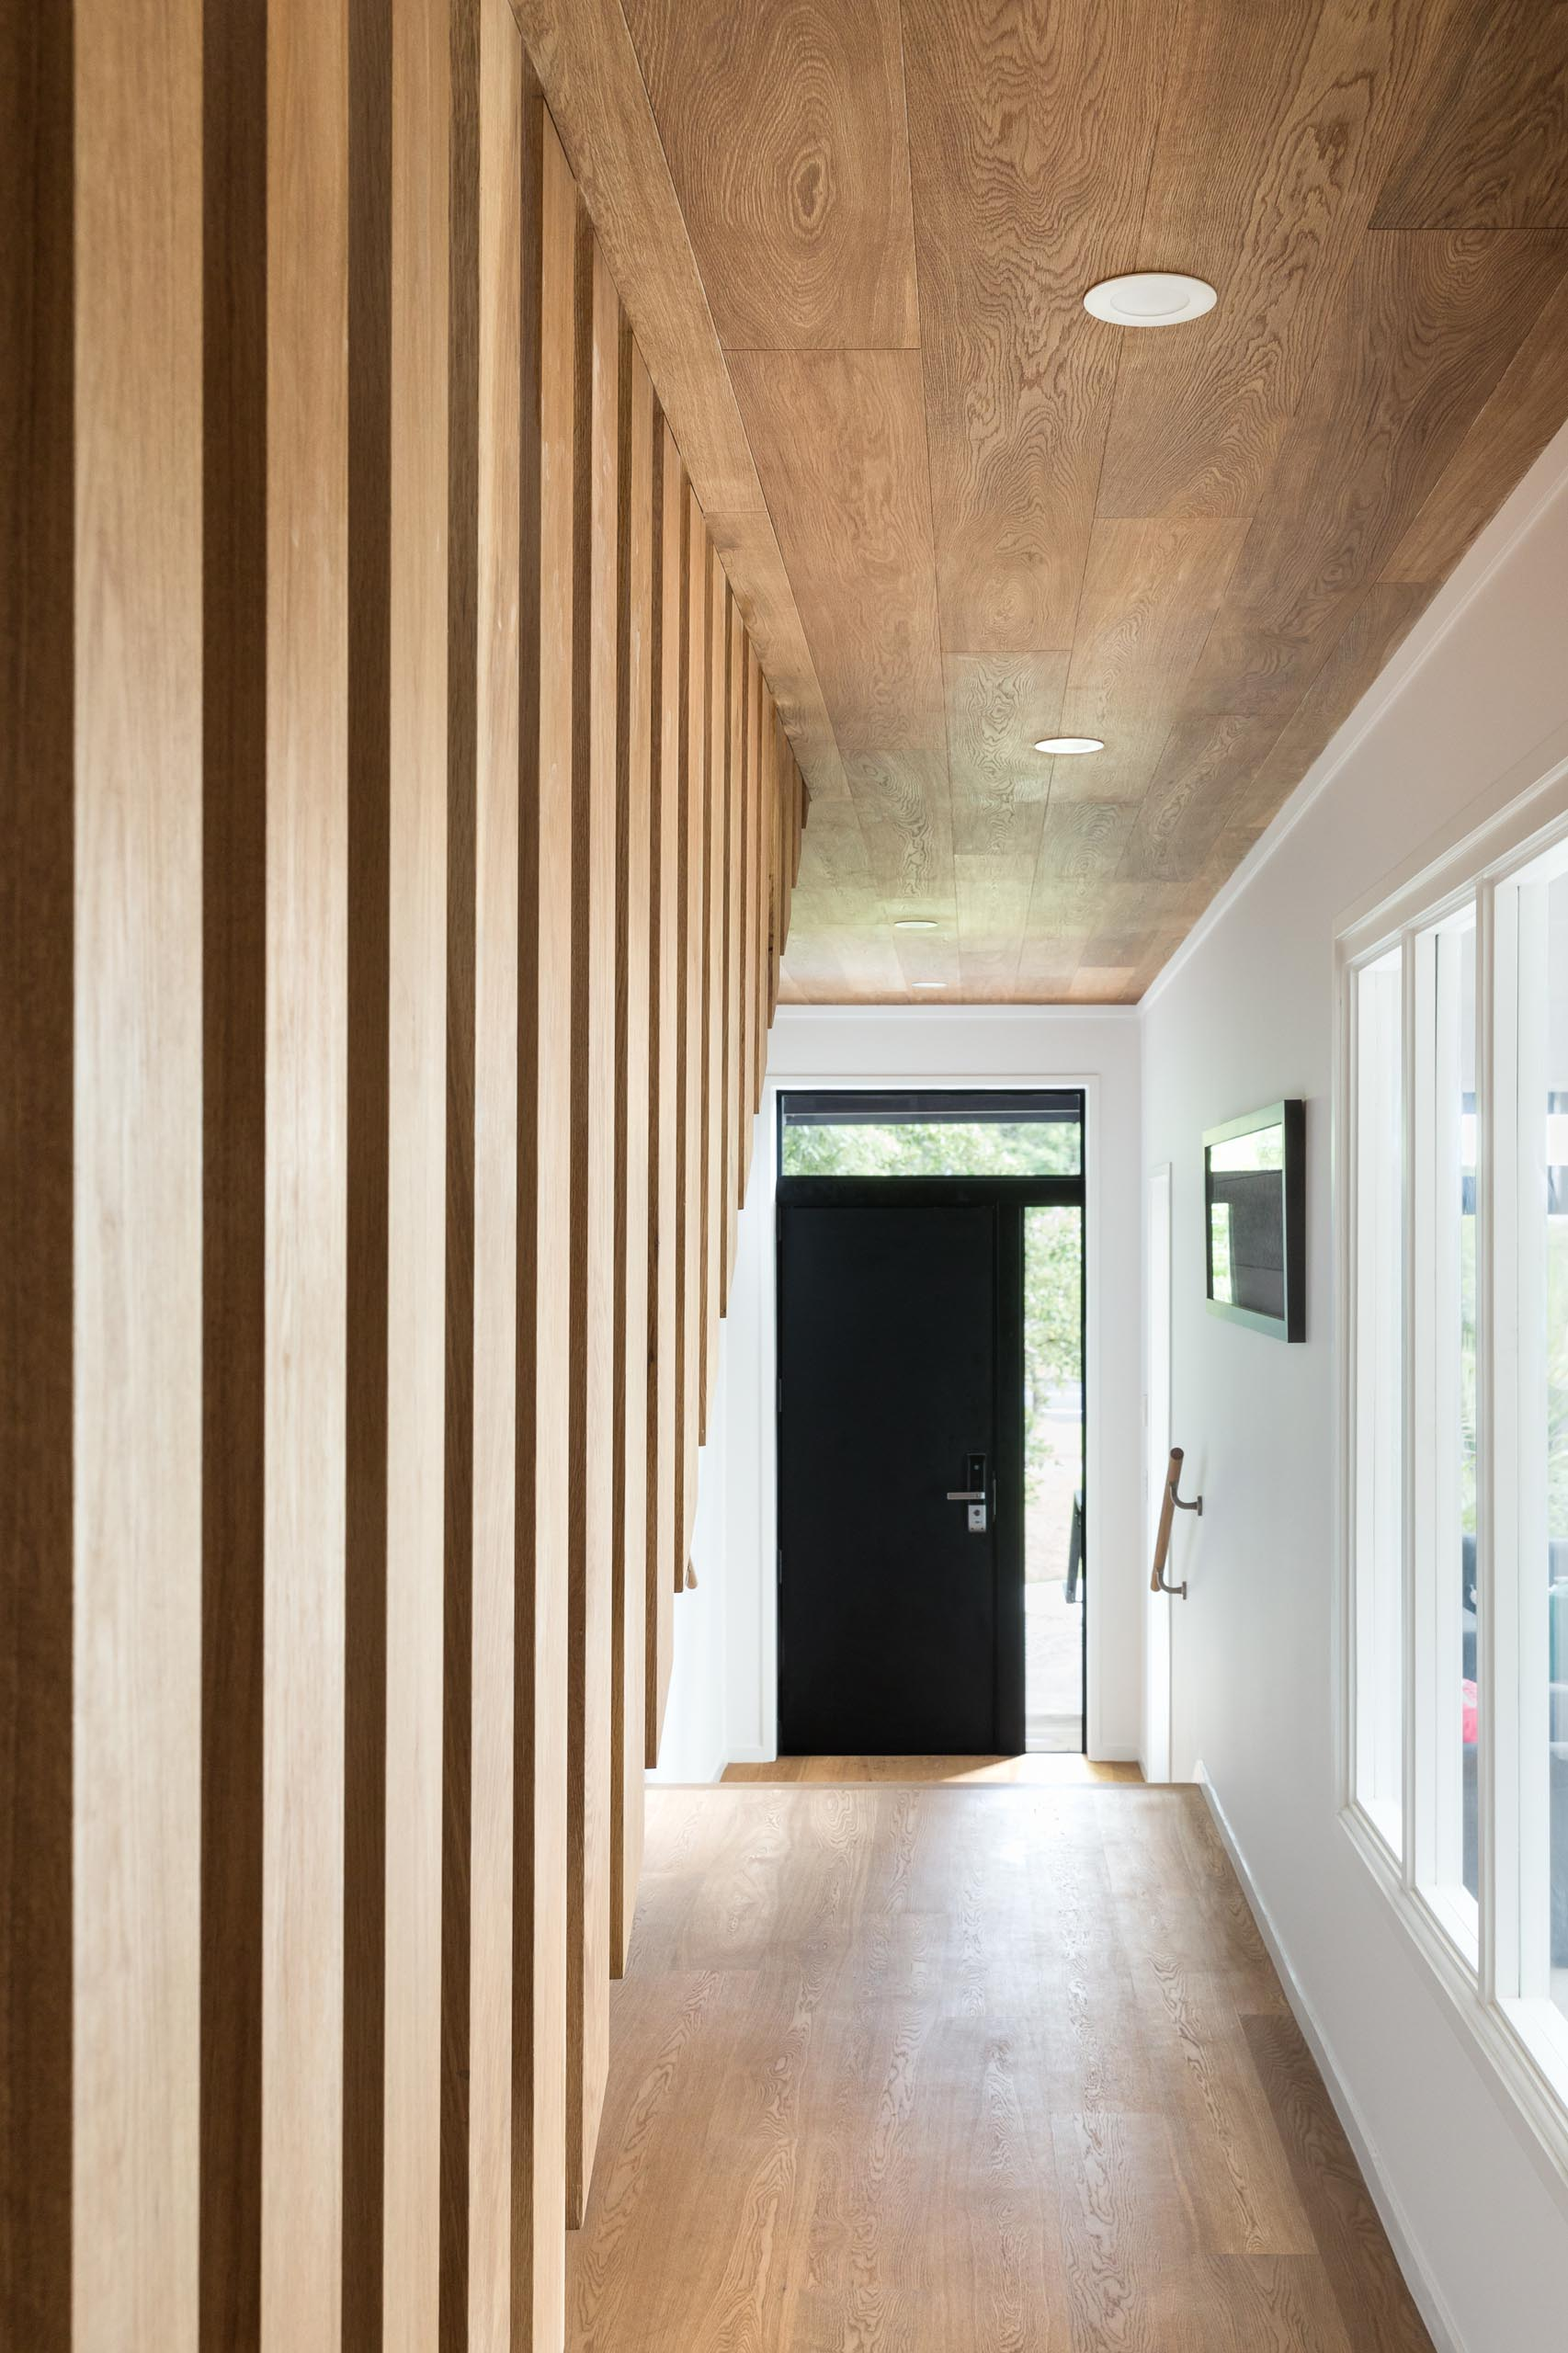 The front door opens to the entryway and hallway that has a ceiling lined with oak, adding warmth to the interior.